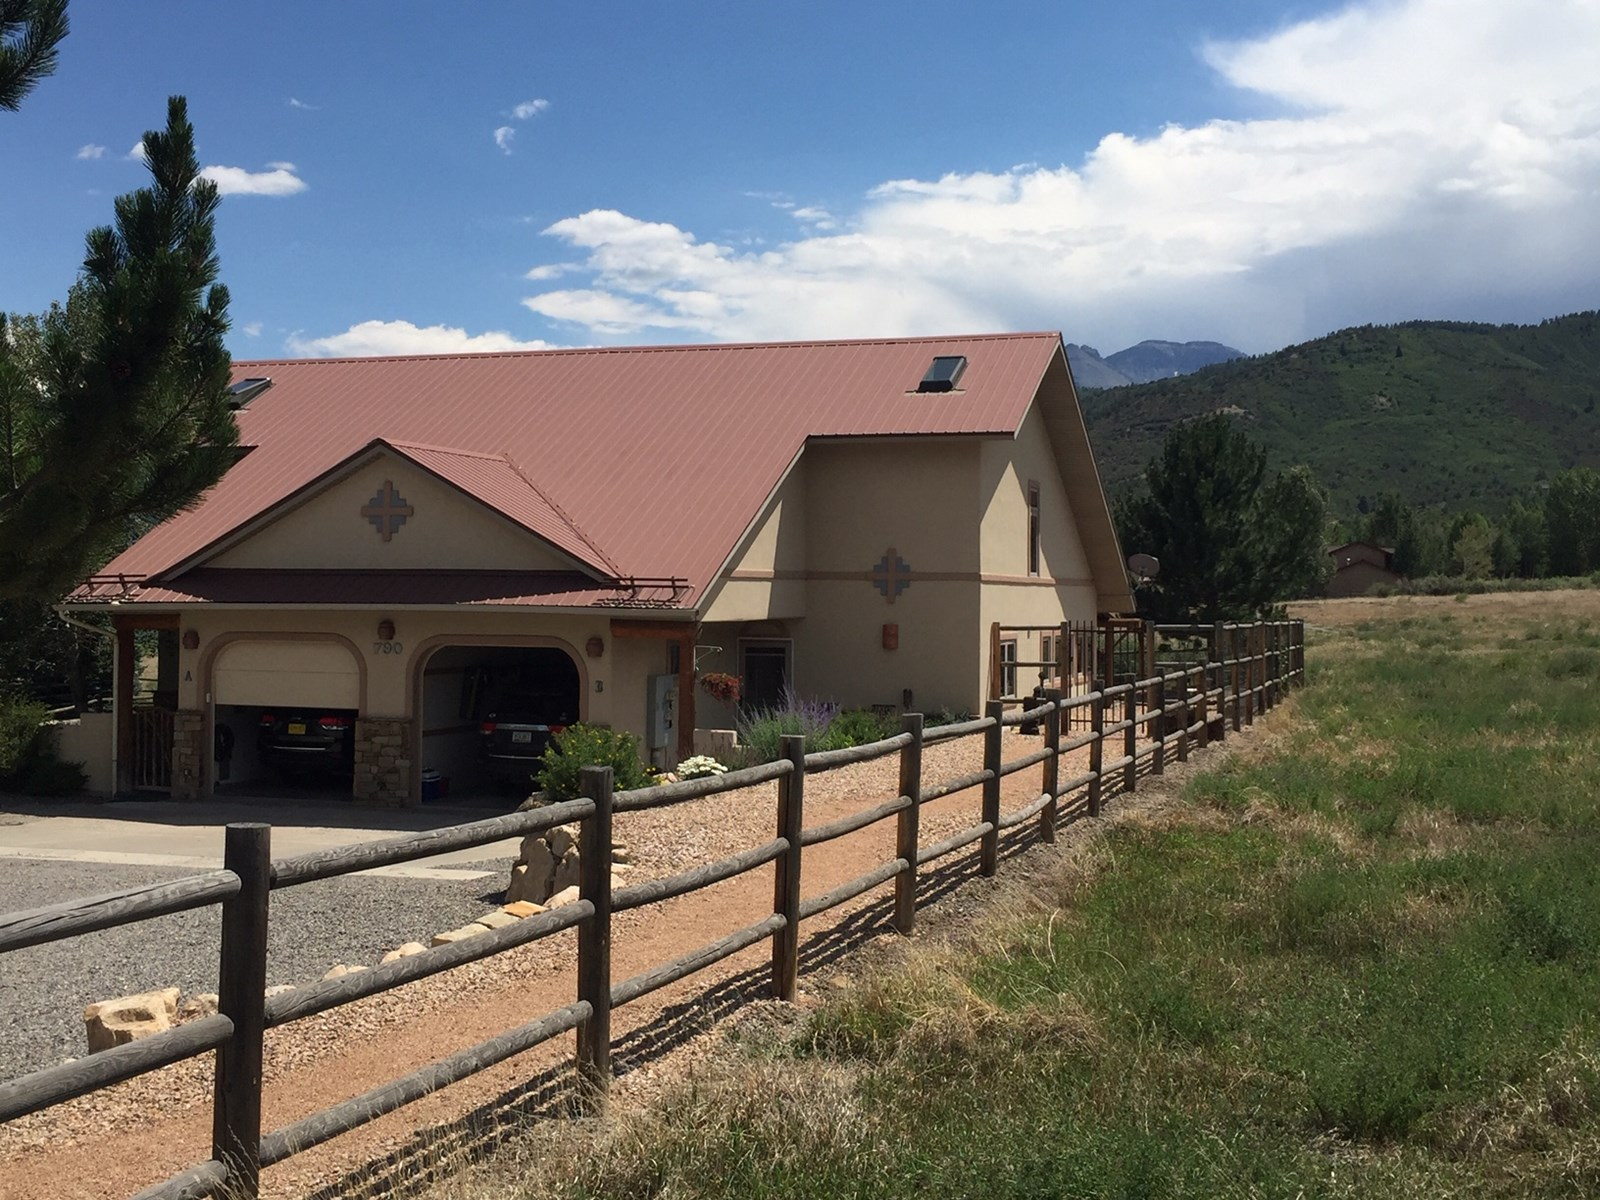 Condo For Sale, Ridgway, Colorado